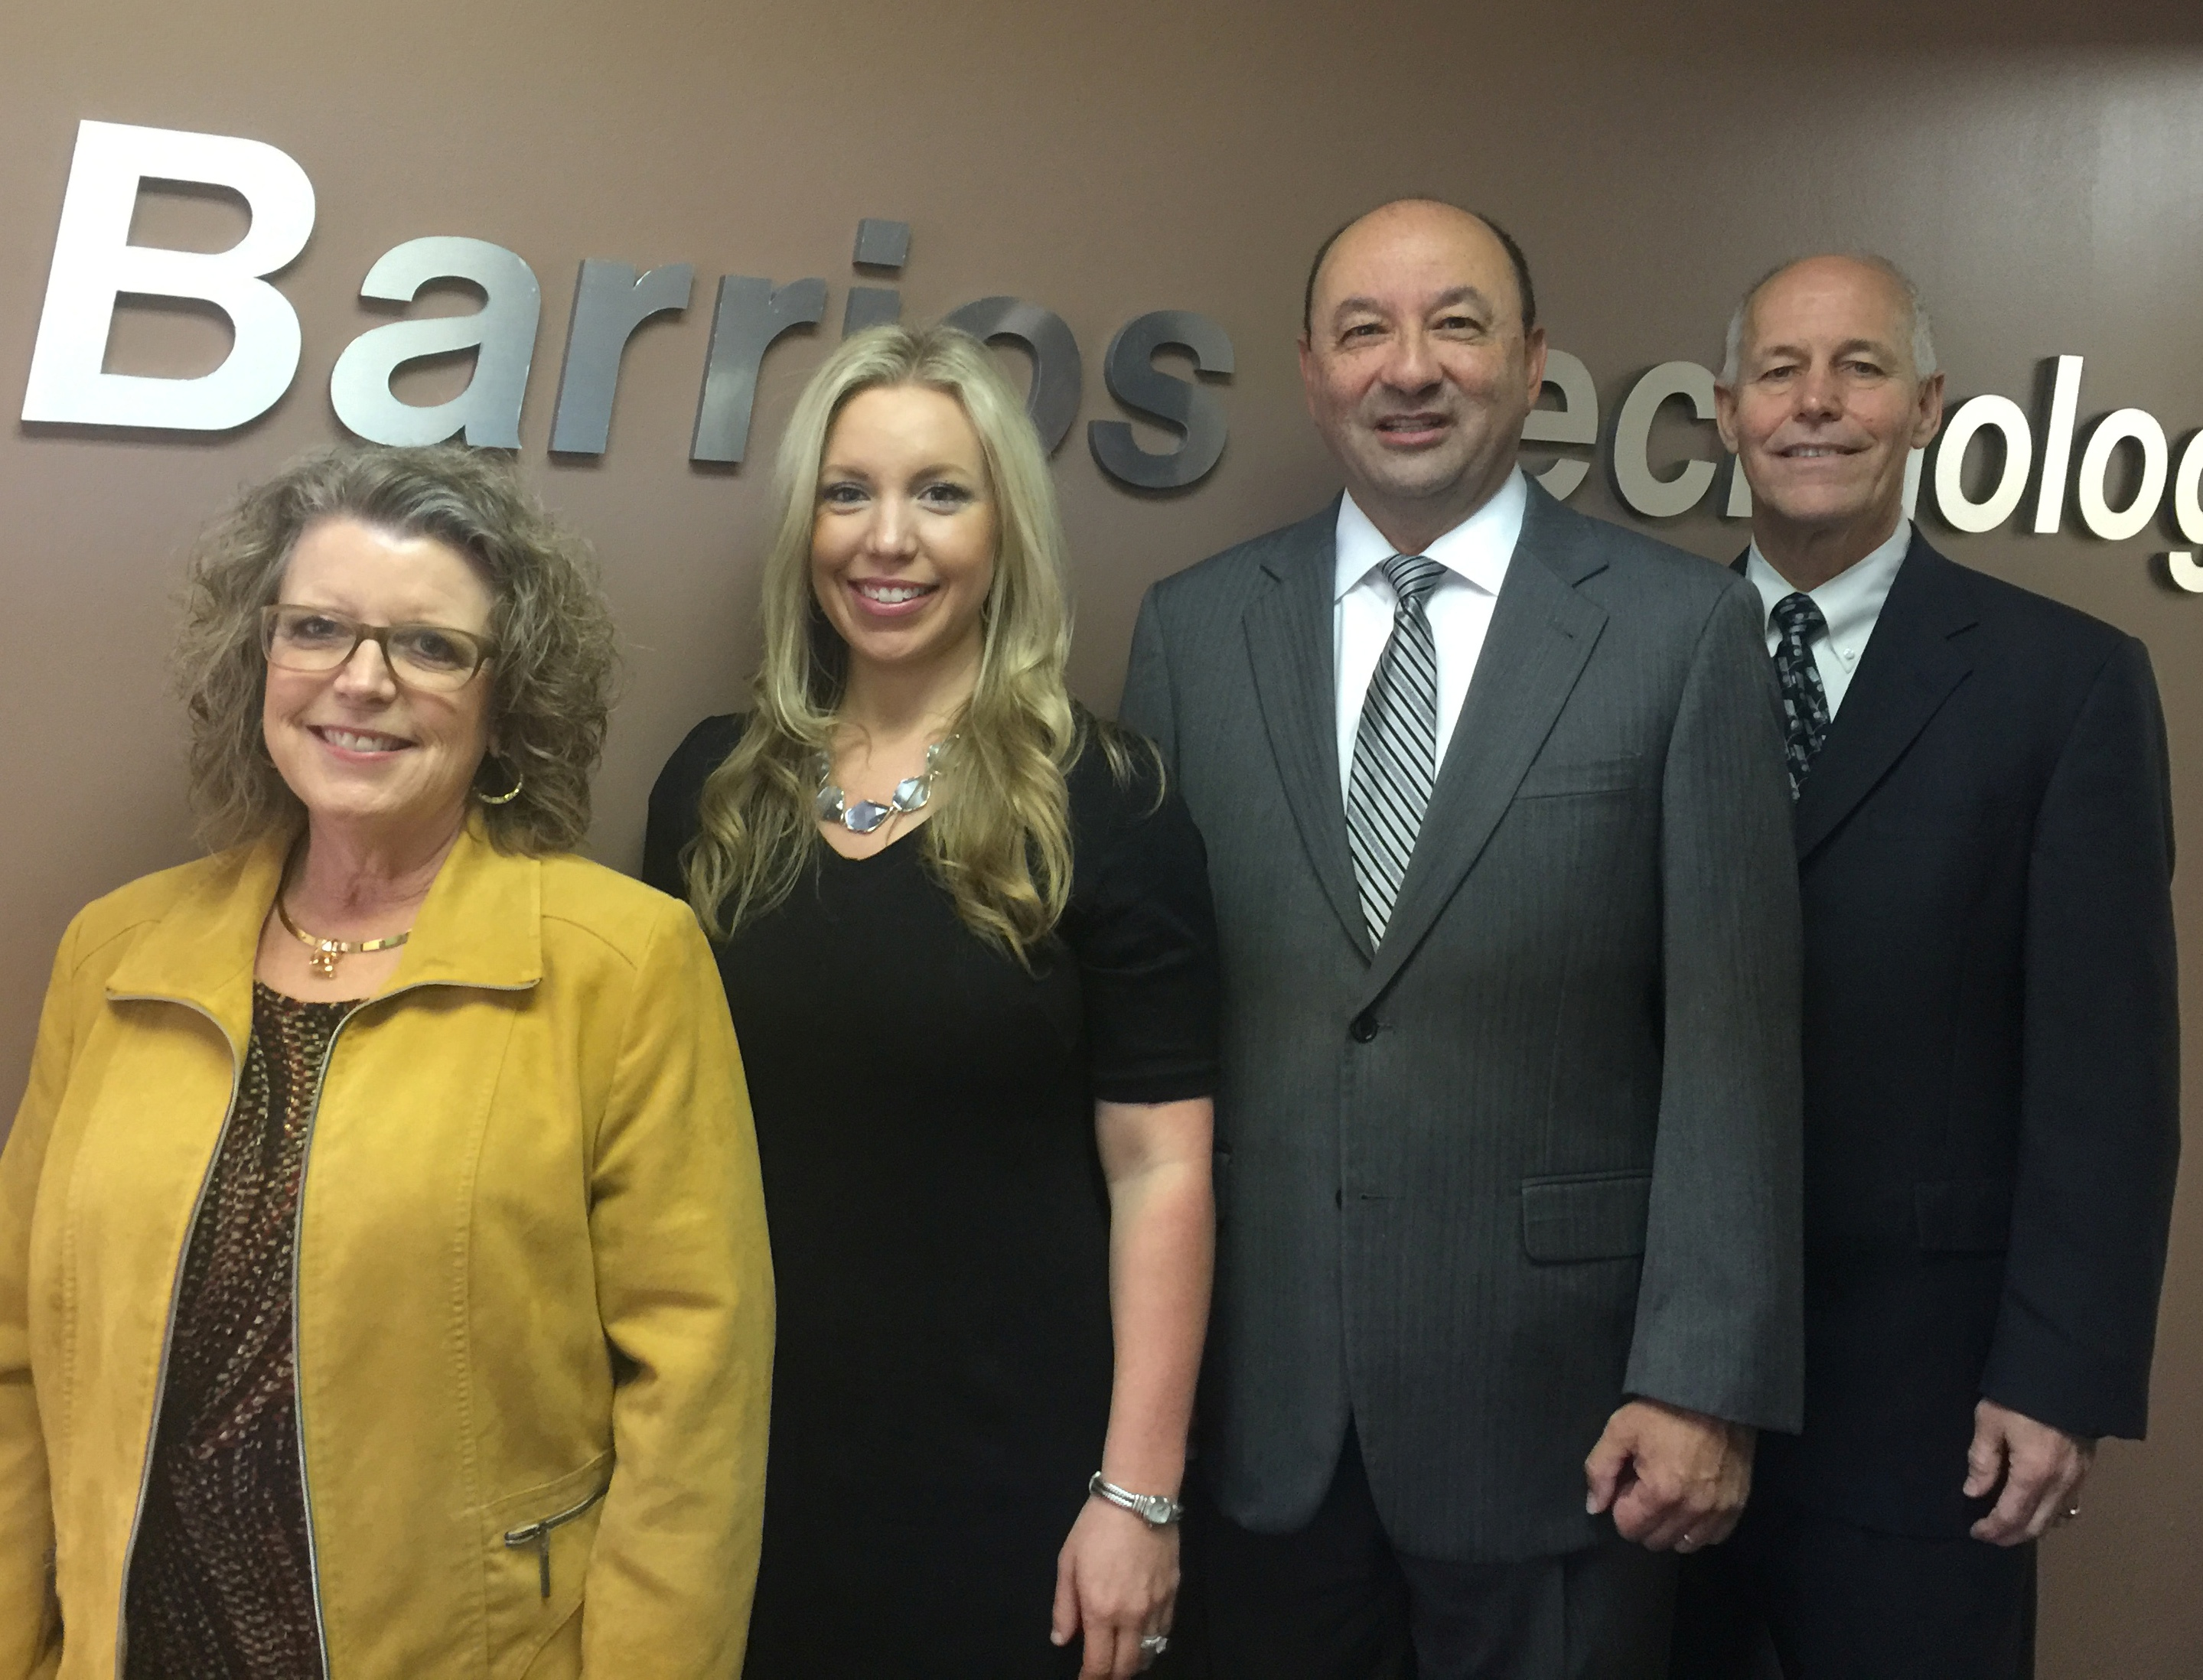 Houston based Barrios Technology announces executive leadership changes at their corporate office and with their prime Johnson Space Center International Space Station Program Mission and Program Integration contract.  Pictured, from left, are Barrio CEO Sandy Johnson; Kelly Page, MAPI Mission Analysis and Integration Manager Barrios Technology; Mark Polansky, MAPI Program Manager Barrios Technology; and Robert McAfoos, President Barrios Technology.